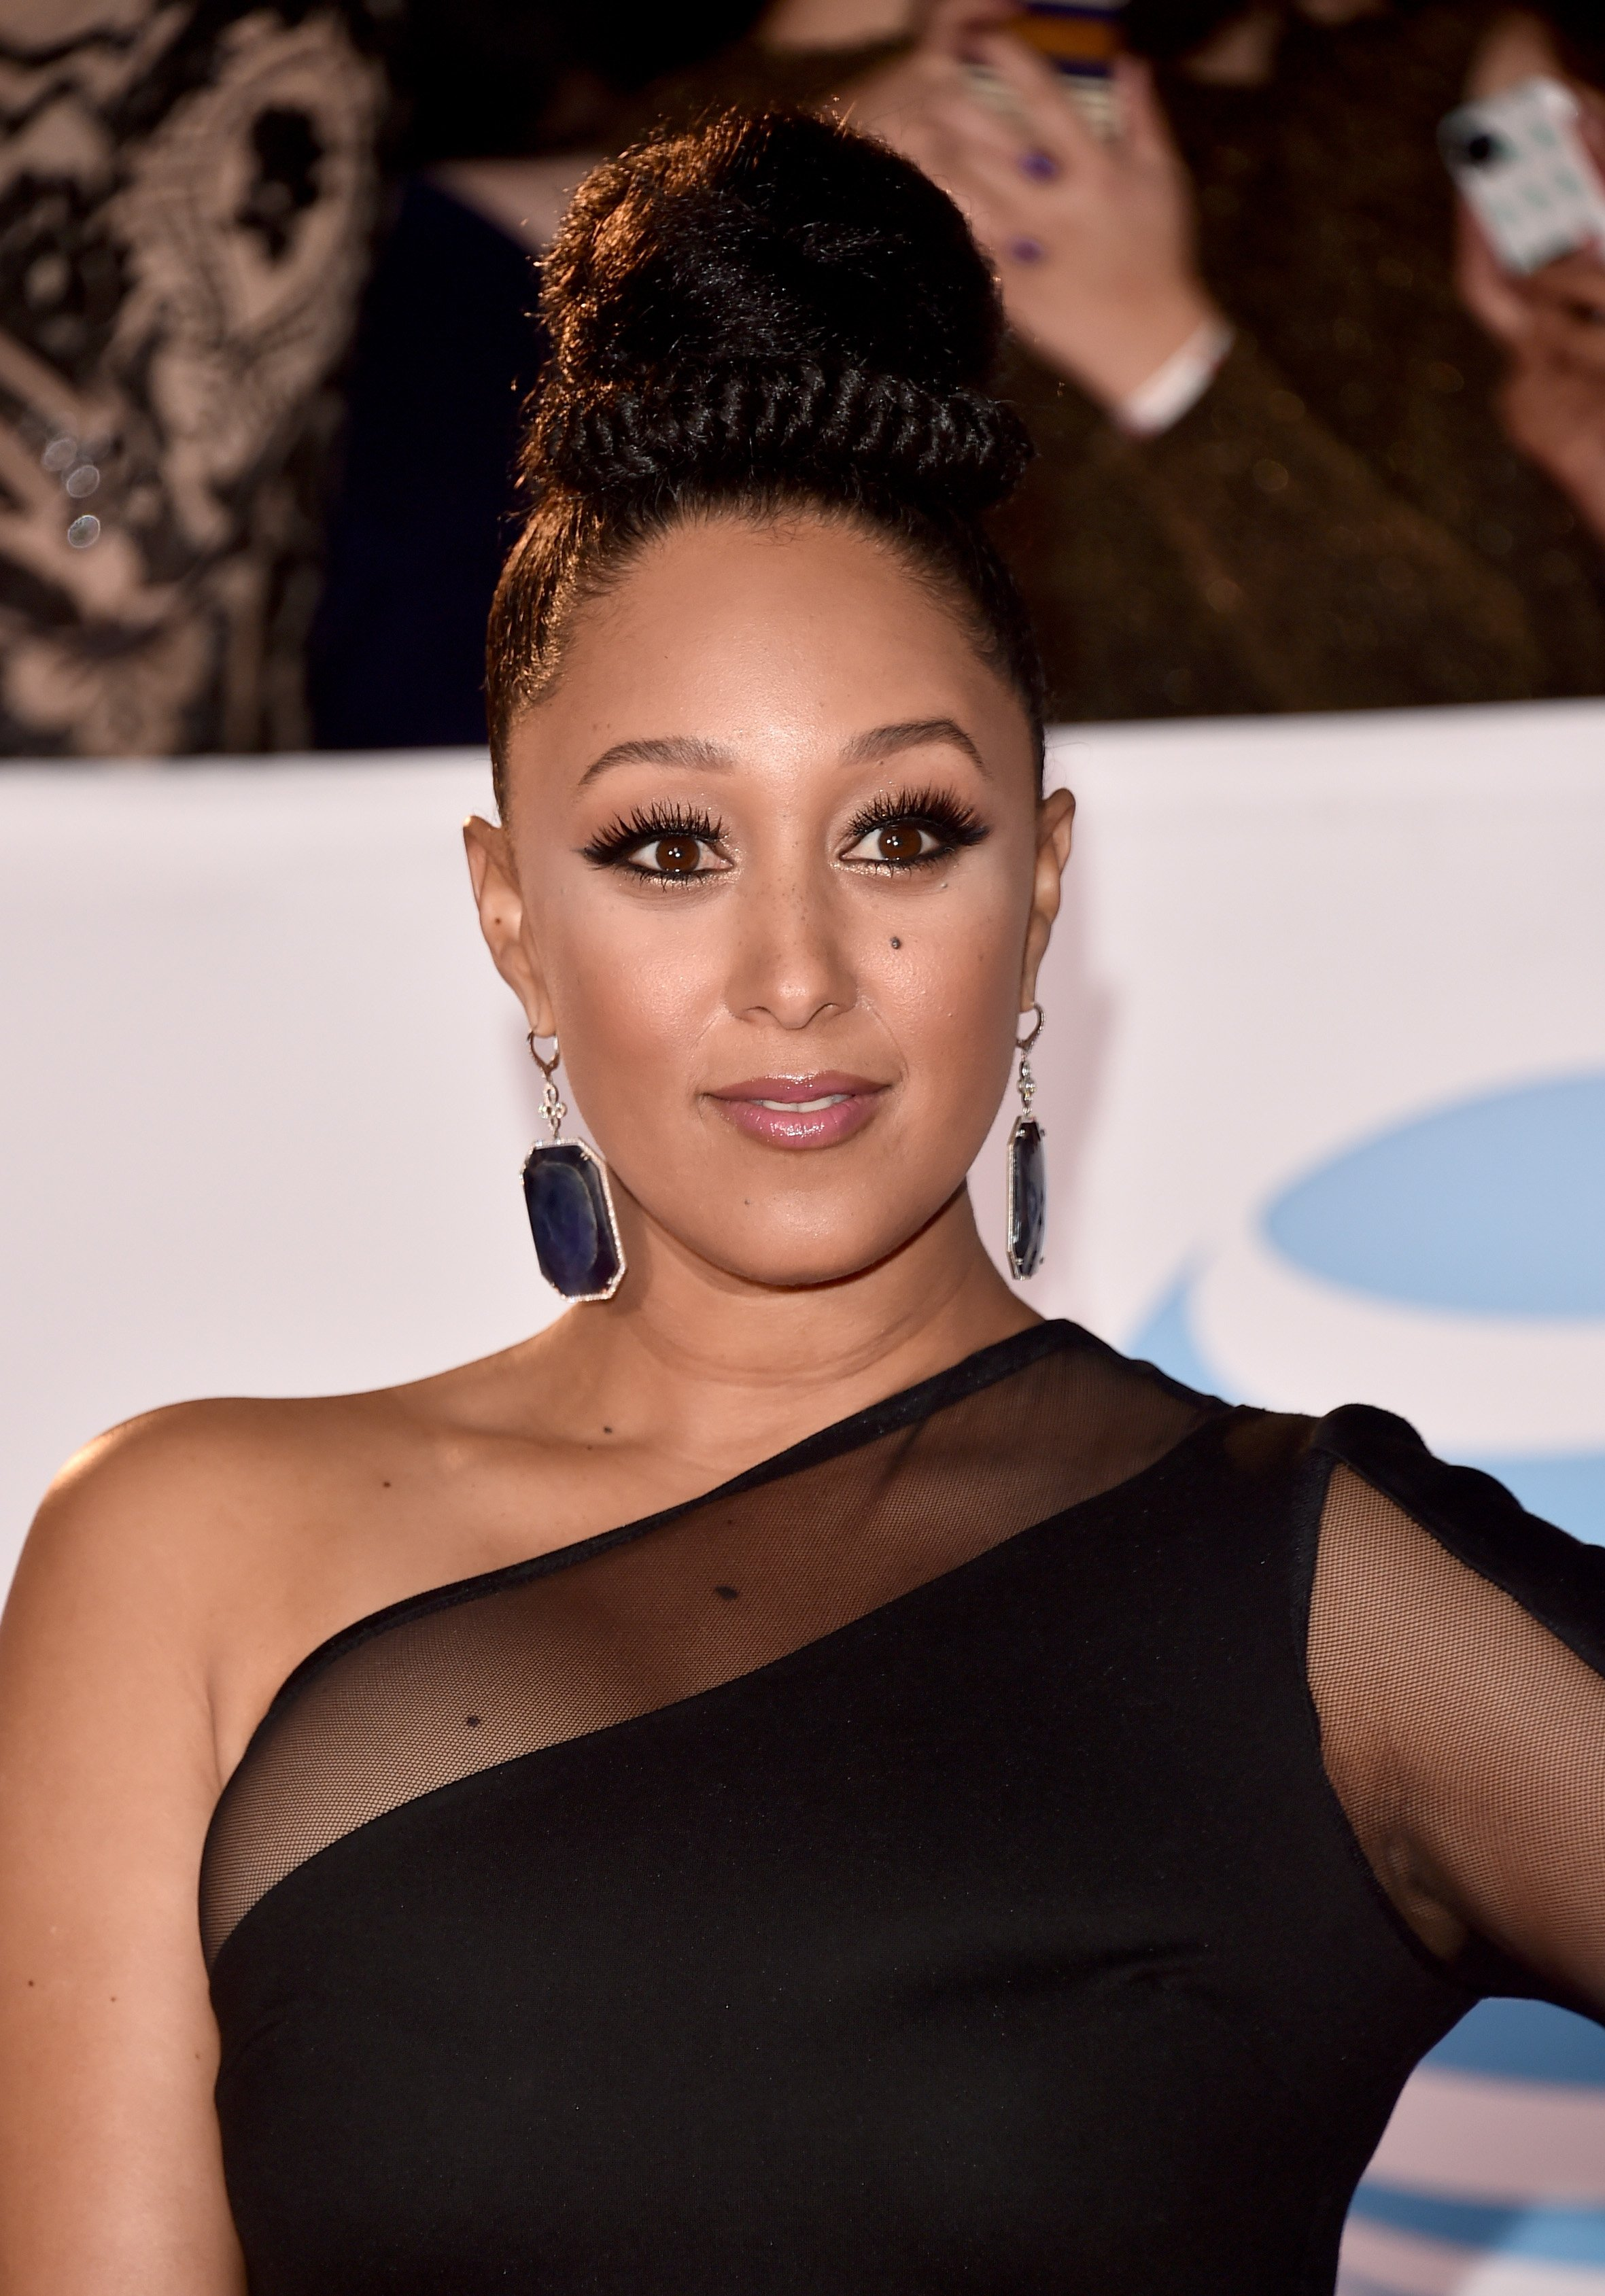 Tamera Mowry at the 49th NAACP Awards in January 2018. | Photo: Getty Images